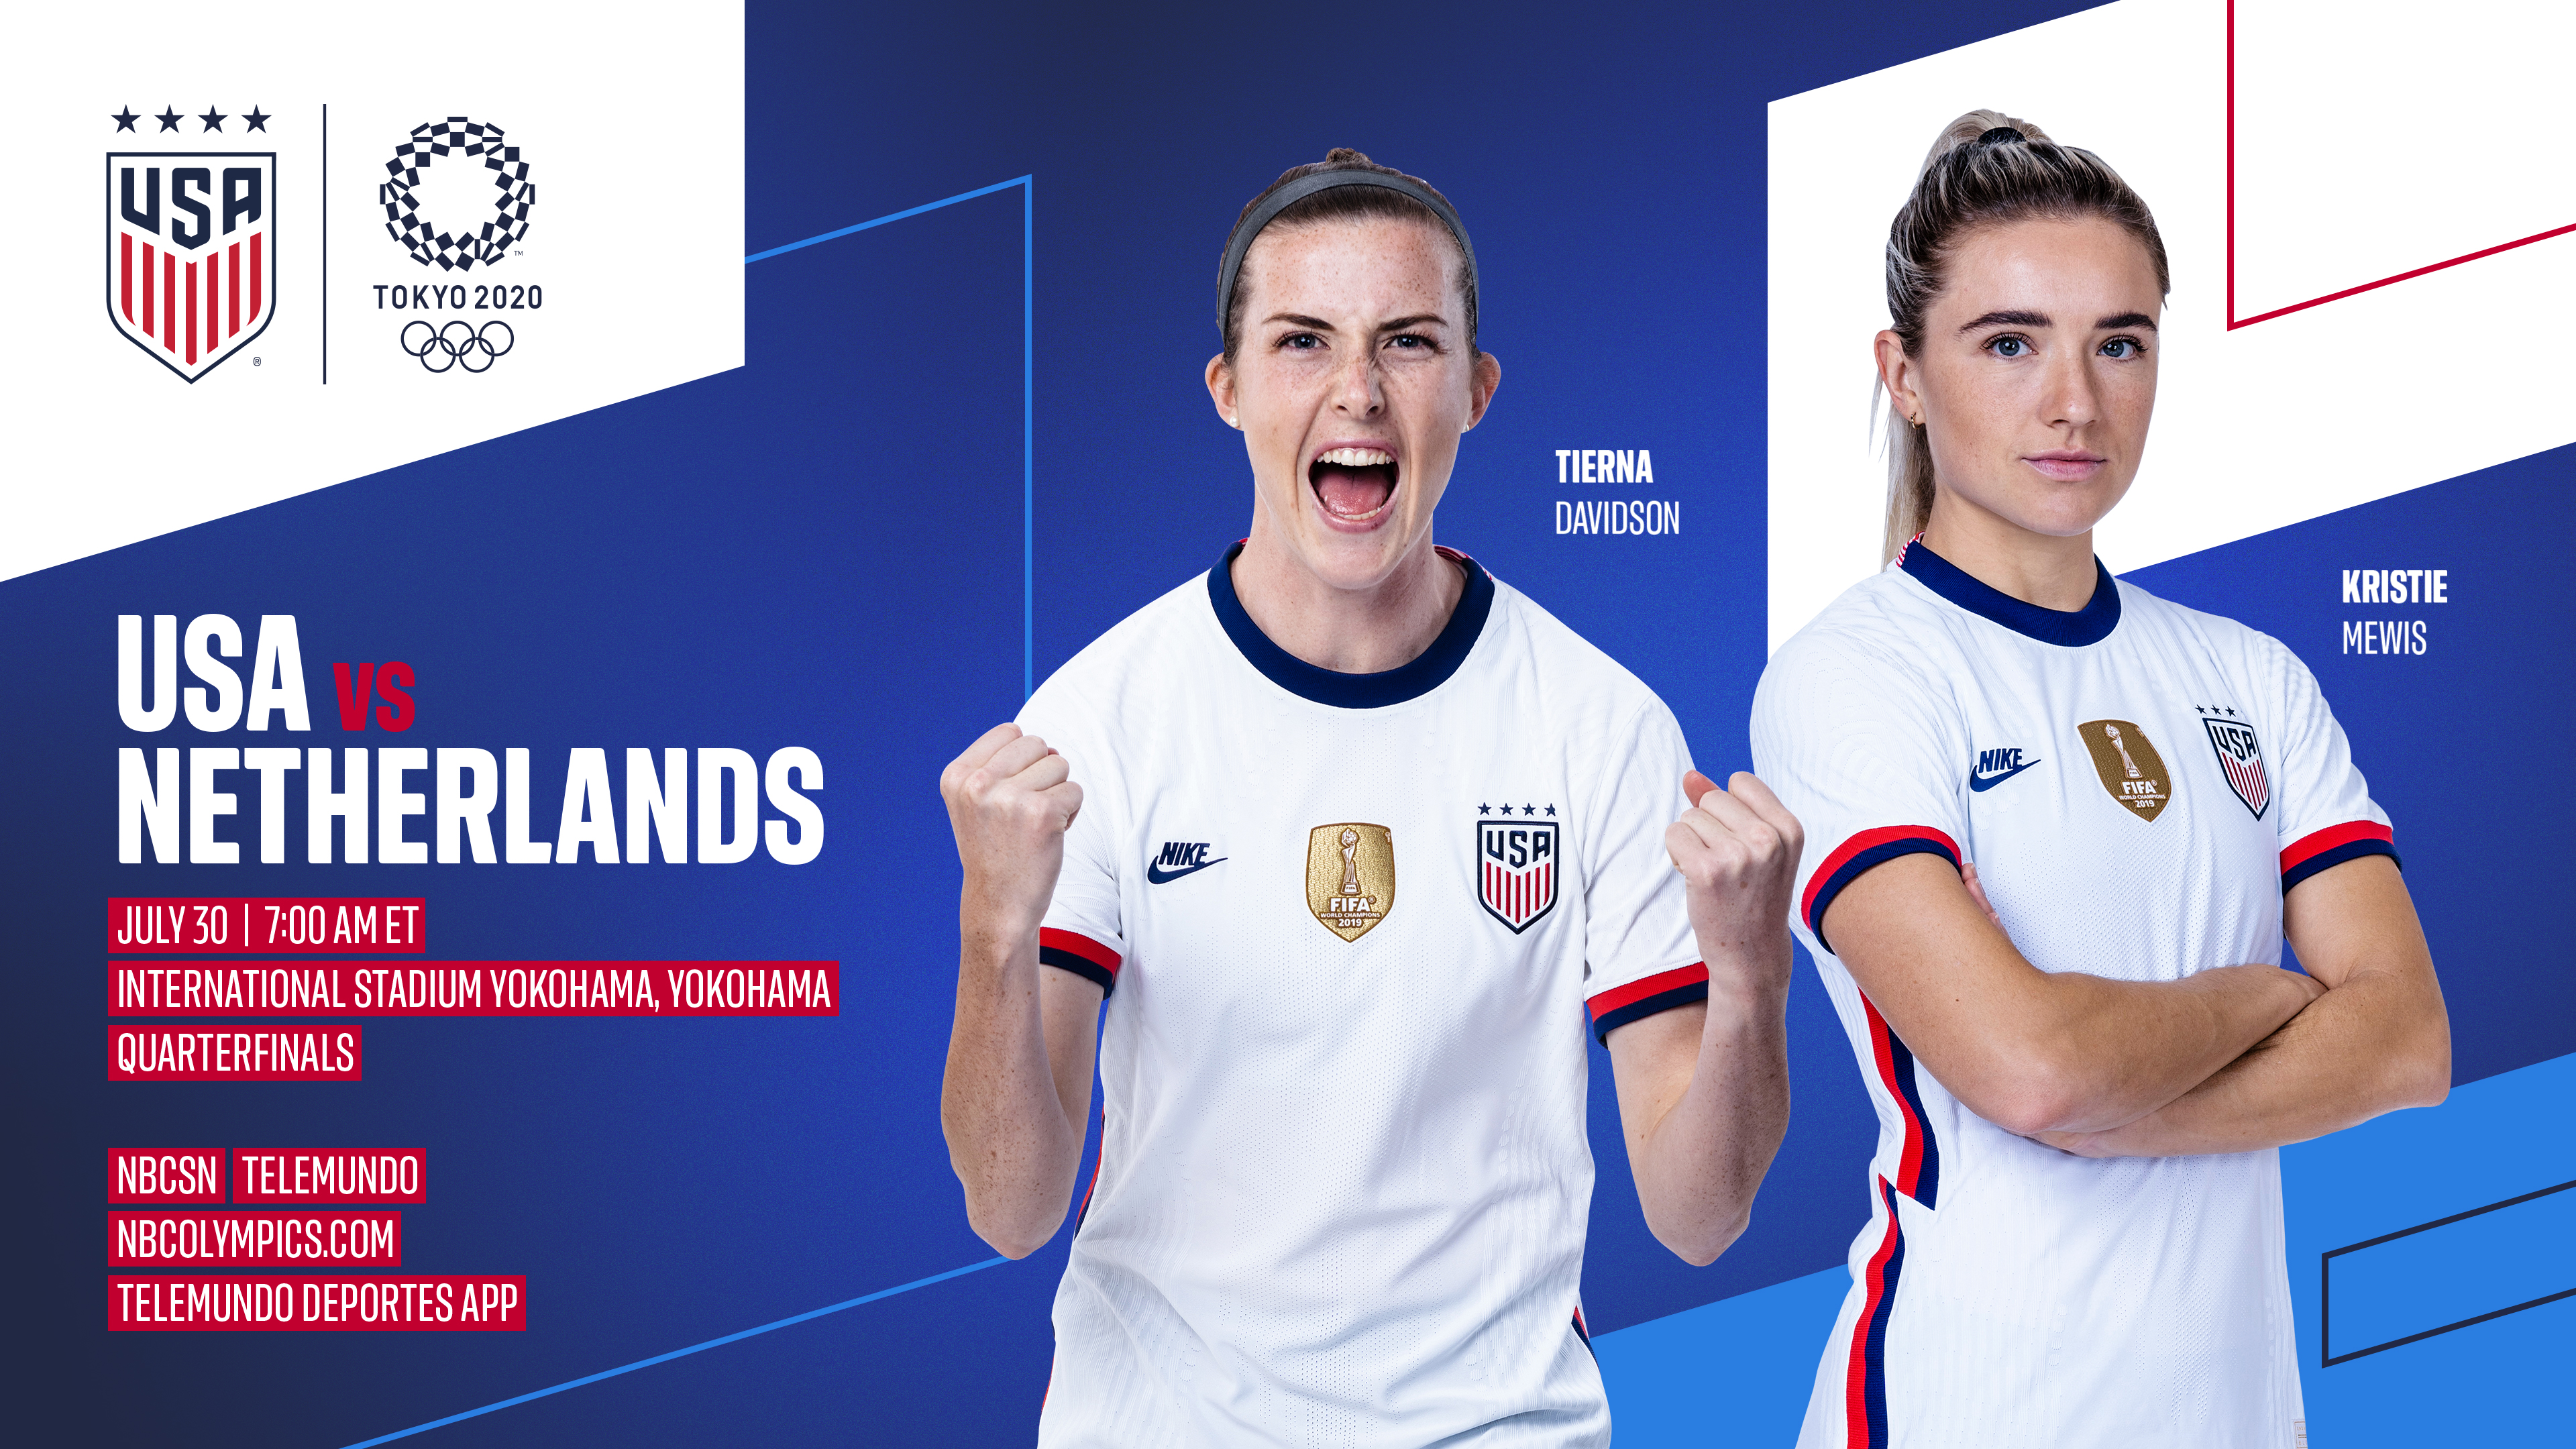 2020 Tokyo Olympics: USA vs. Netherlands - Preview, Schedule, TV Channels & Start Time